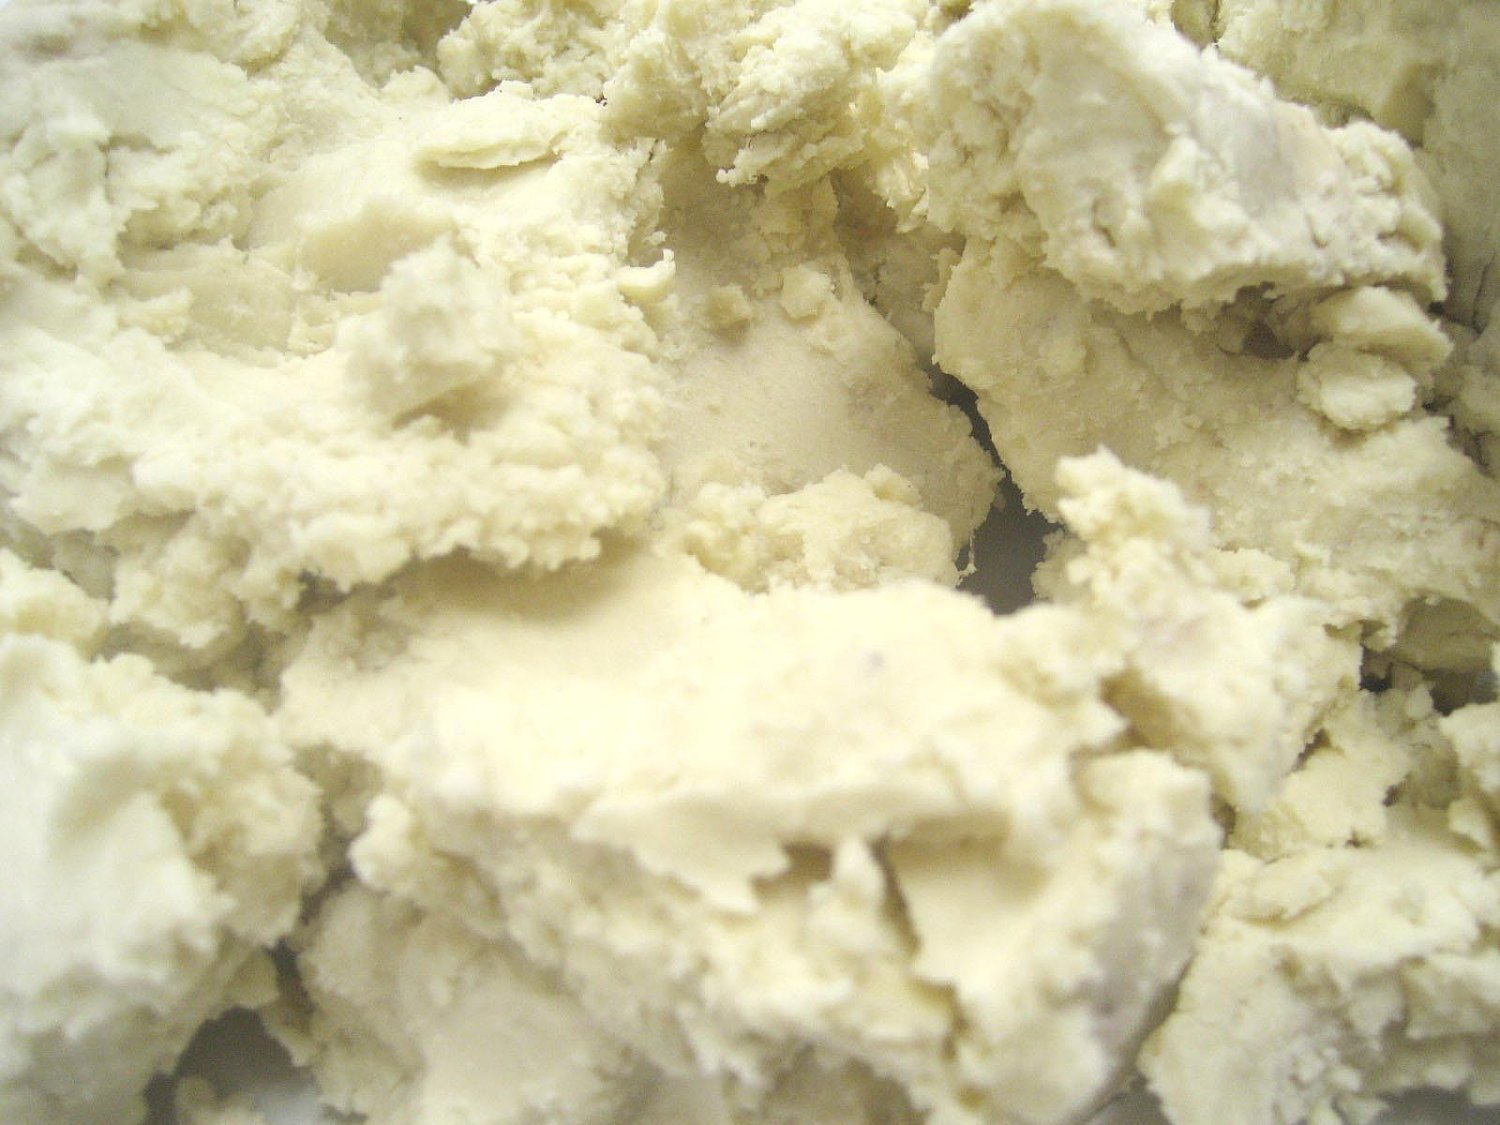 Miibox 100% Raw Unrefined Organic Shea Butter-African Grade A Ivory 1 Pound (16oz) Skin Beauty Solutions BU00M01581